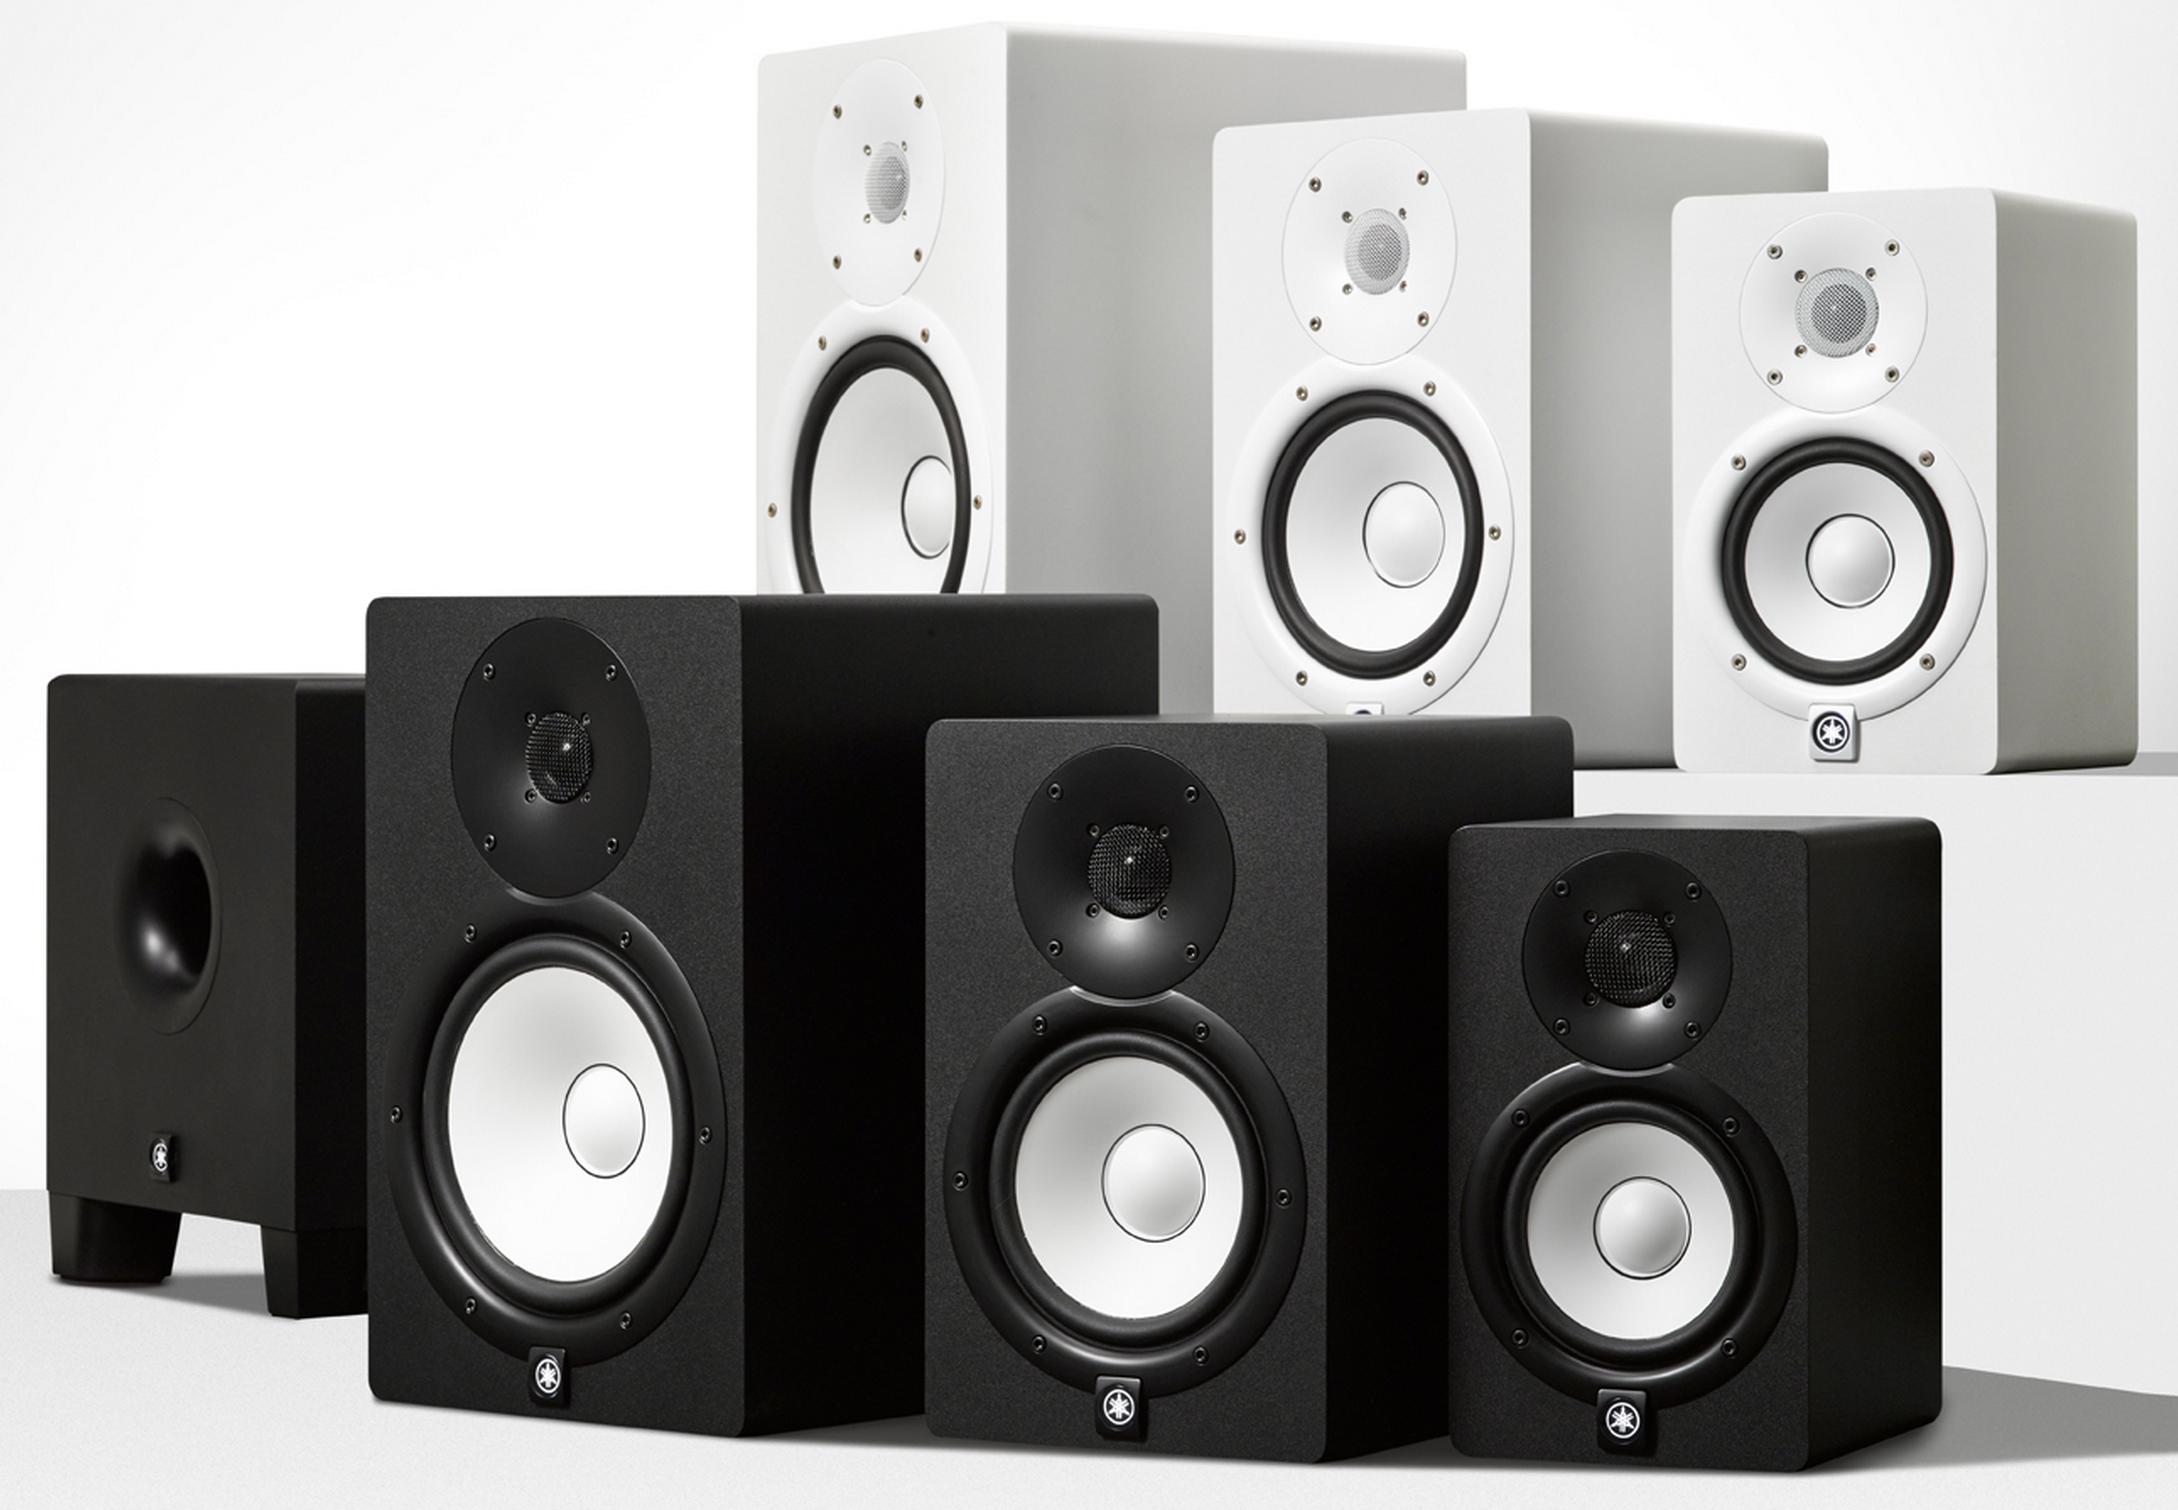 Comparativa de monitores yamaha hs5 hs7 y hs8 hispasonic for Yamaha hs5 no bass